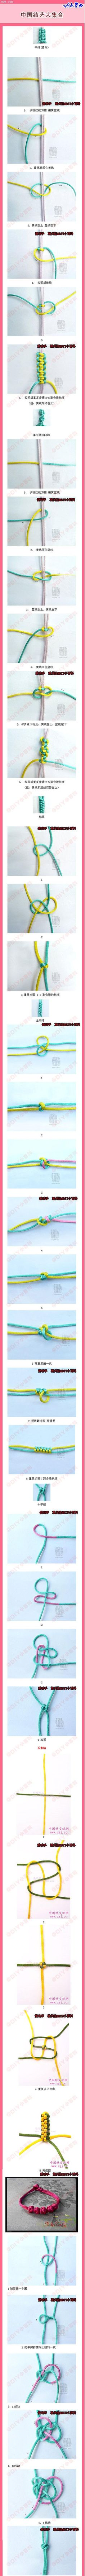 Different bracelet designs! Even though its in another language you can still follow the pictures for each design.